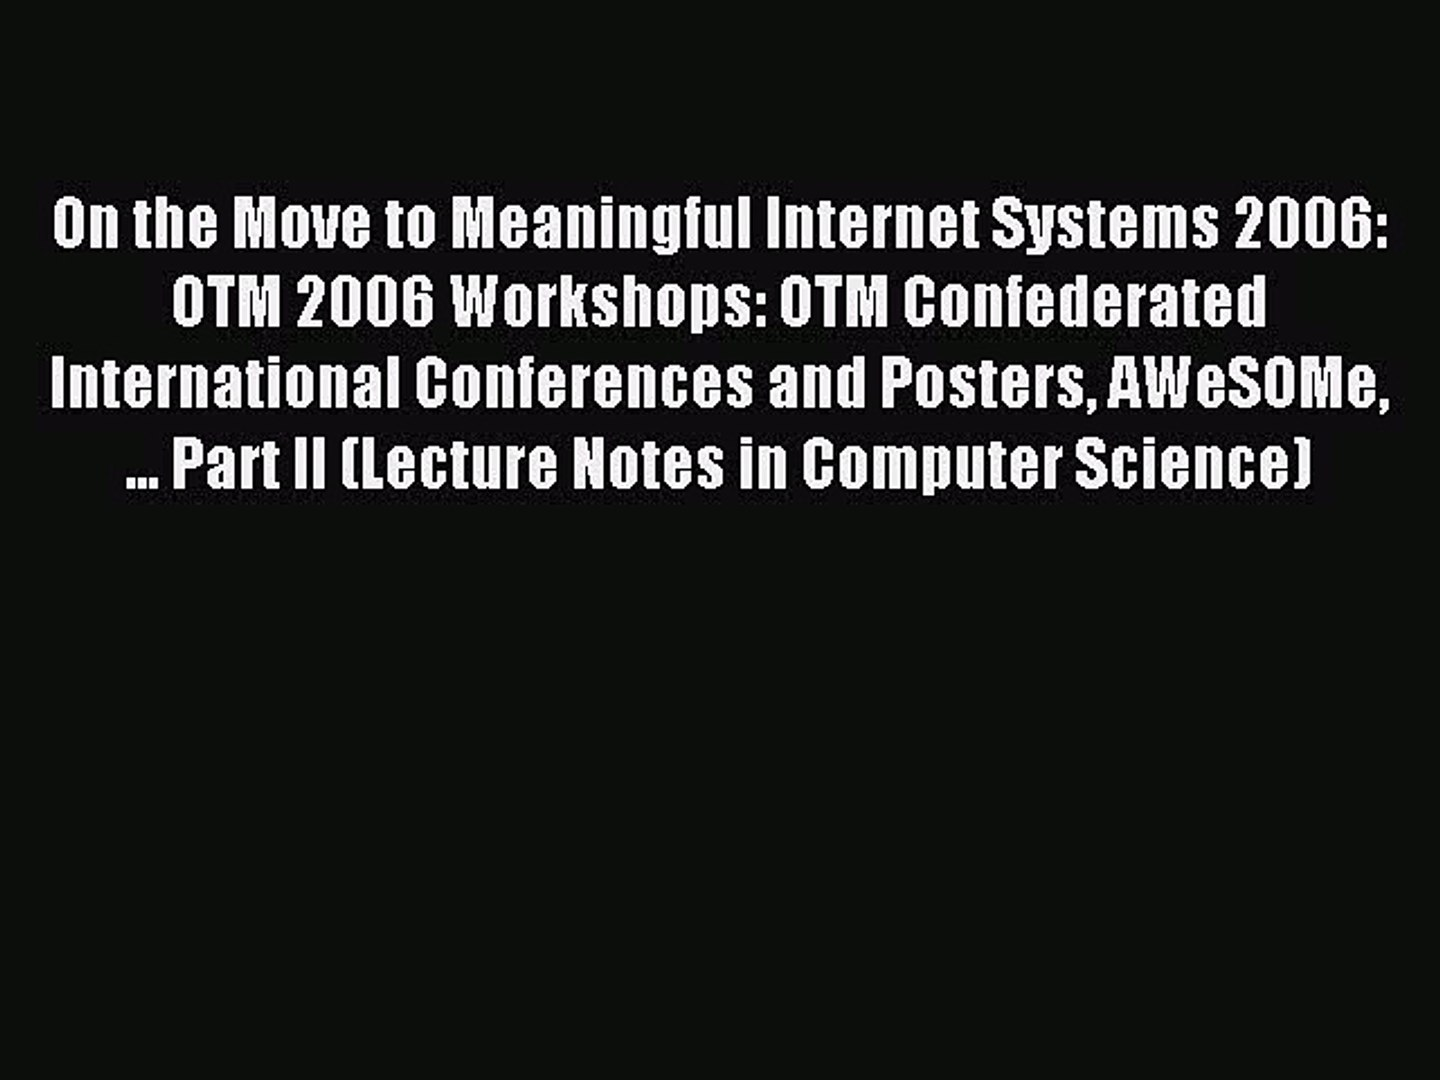 (PDF Download) On the Move to Meaningful Internet Systems 2006: OTM 2006 Workshops: OTM Confederated